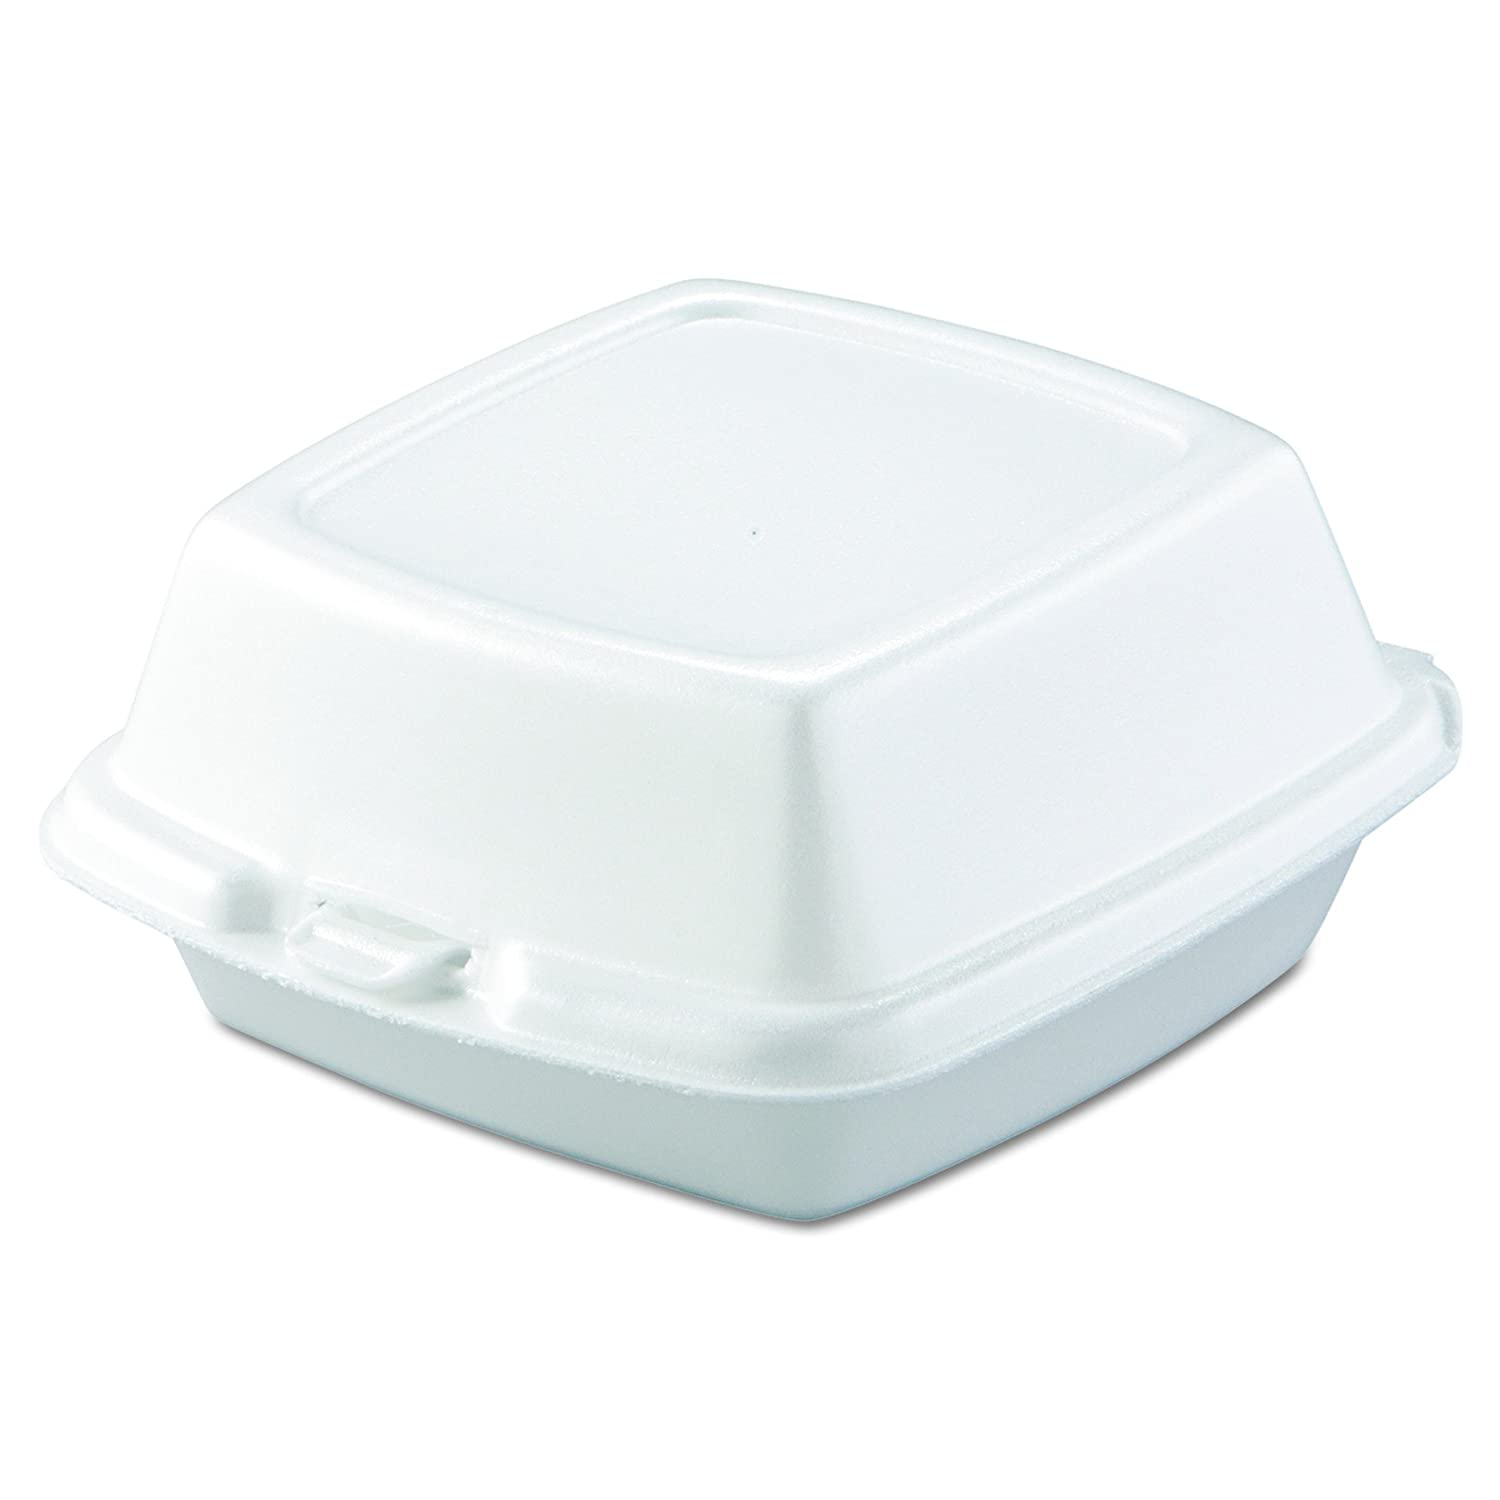 Amazon.com: Dart 60HT1 Carryout Food Containers, Foam, 1-Comp, 5 7/8 x 6 x 3, White (Pack of 50): Health & Personal Care